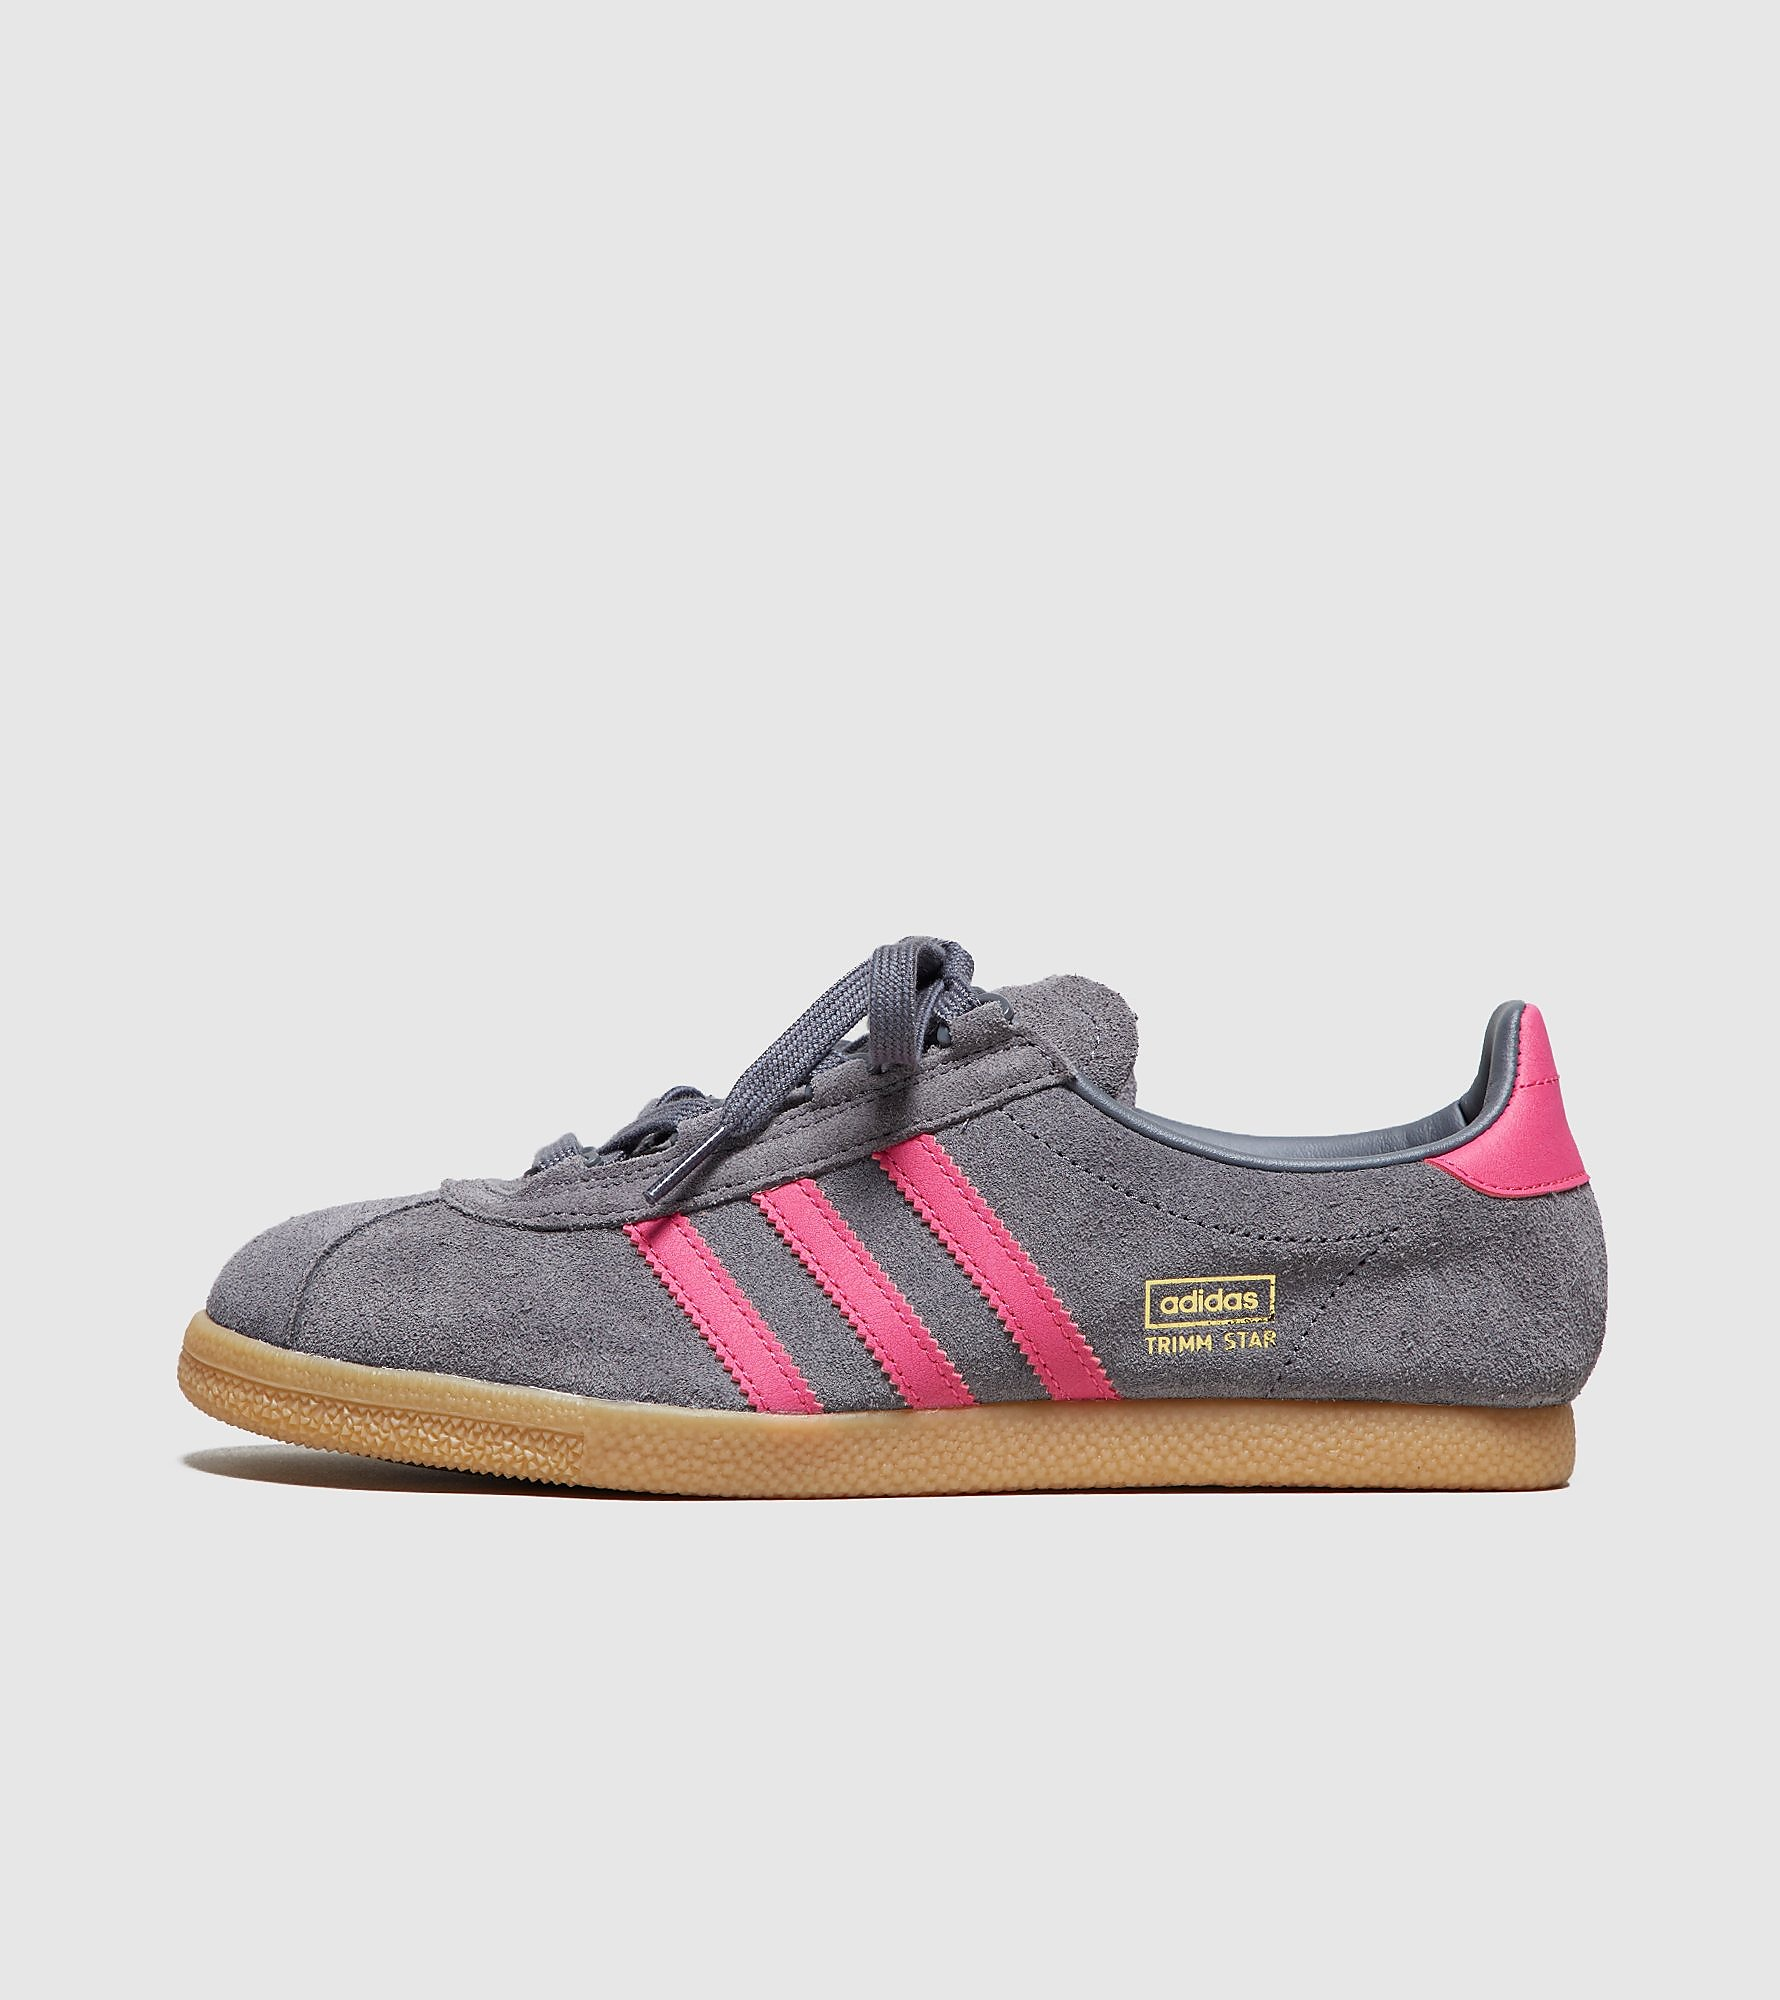 adidas Originals Trimm Star - size? Exclusive Women's, Grey